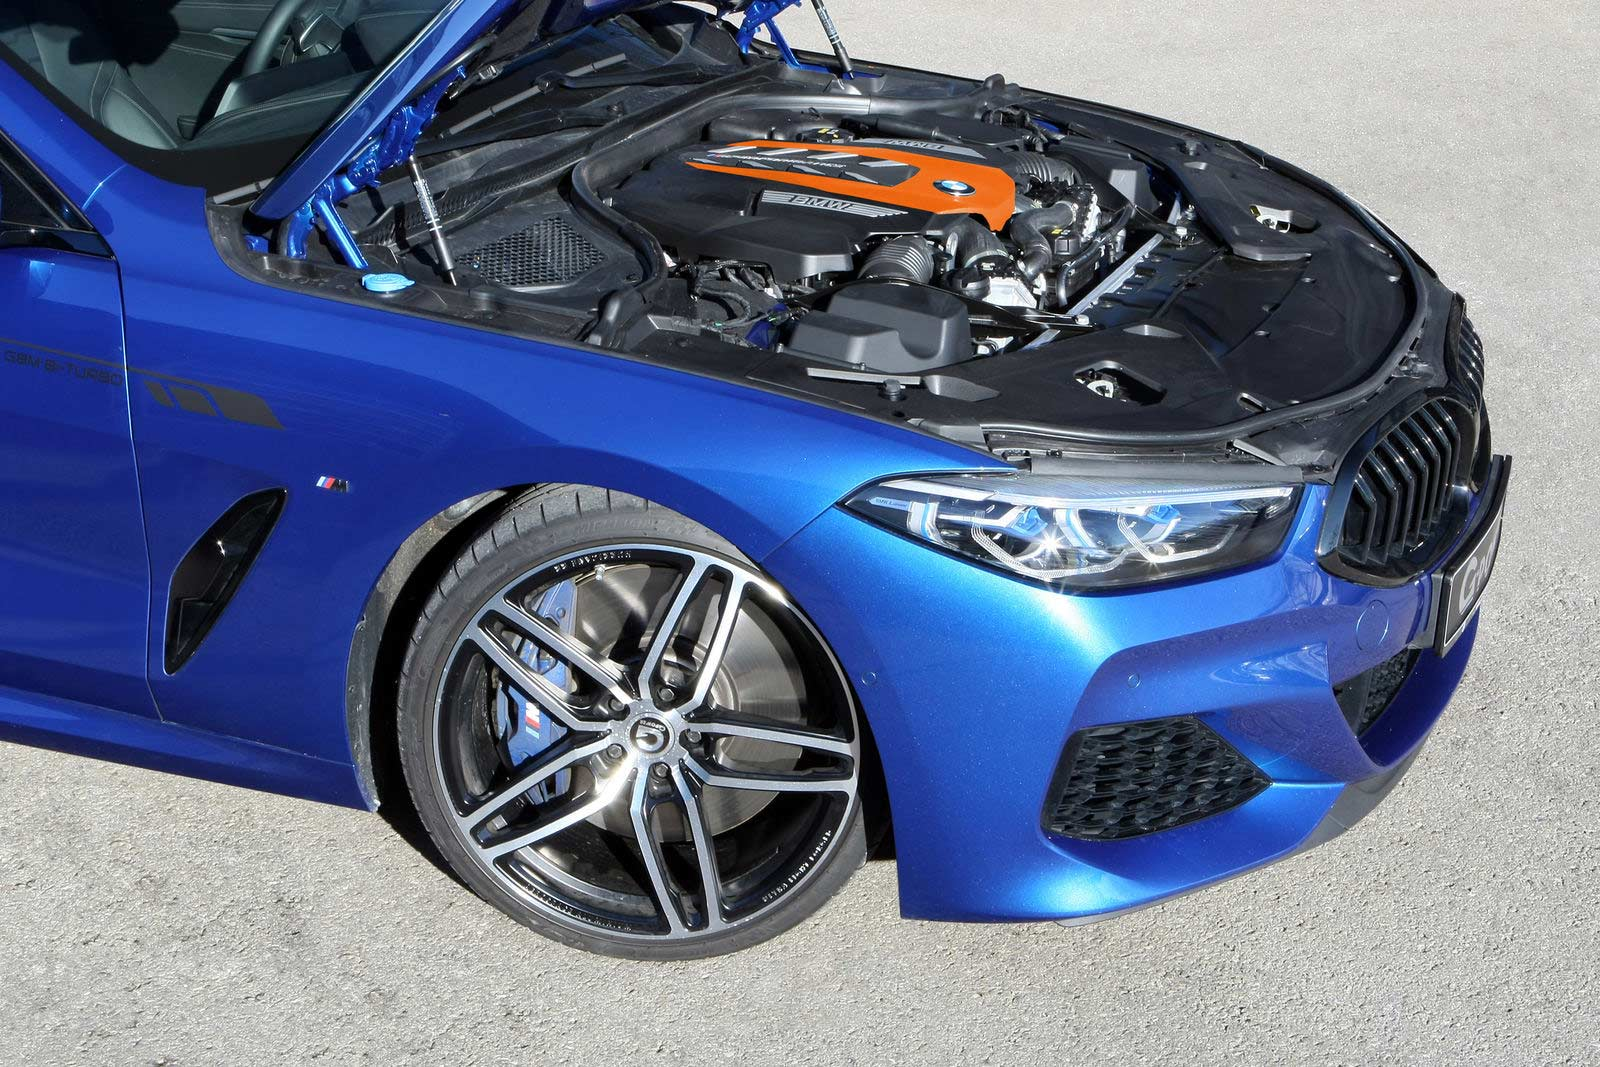 BMW-G-POWER-M850i-xDrive-Engine